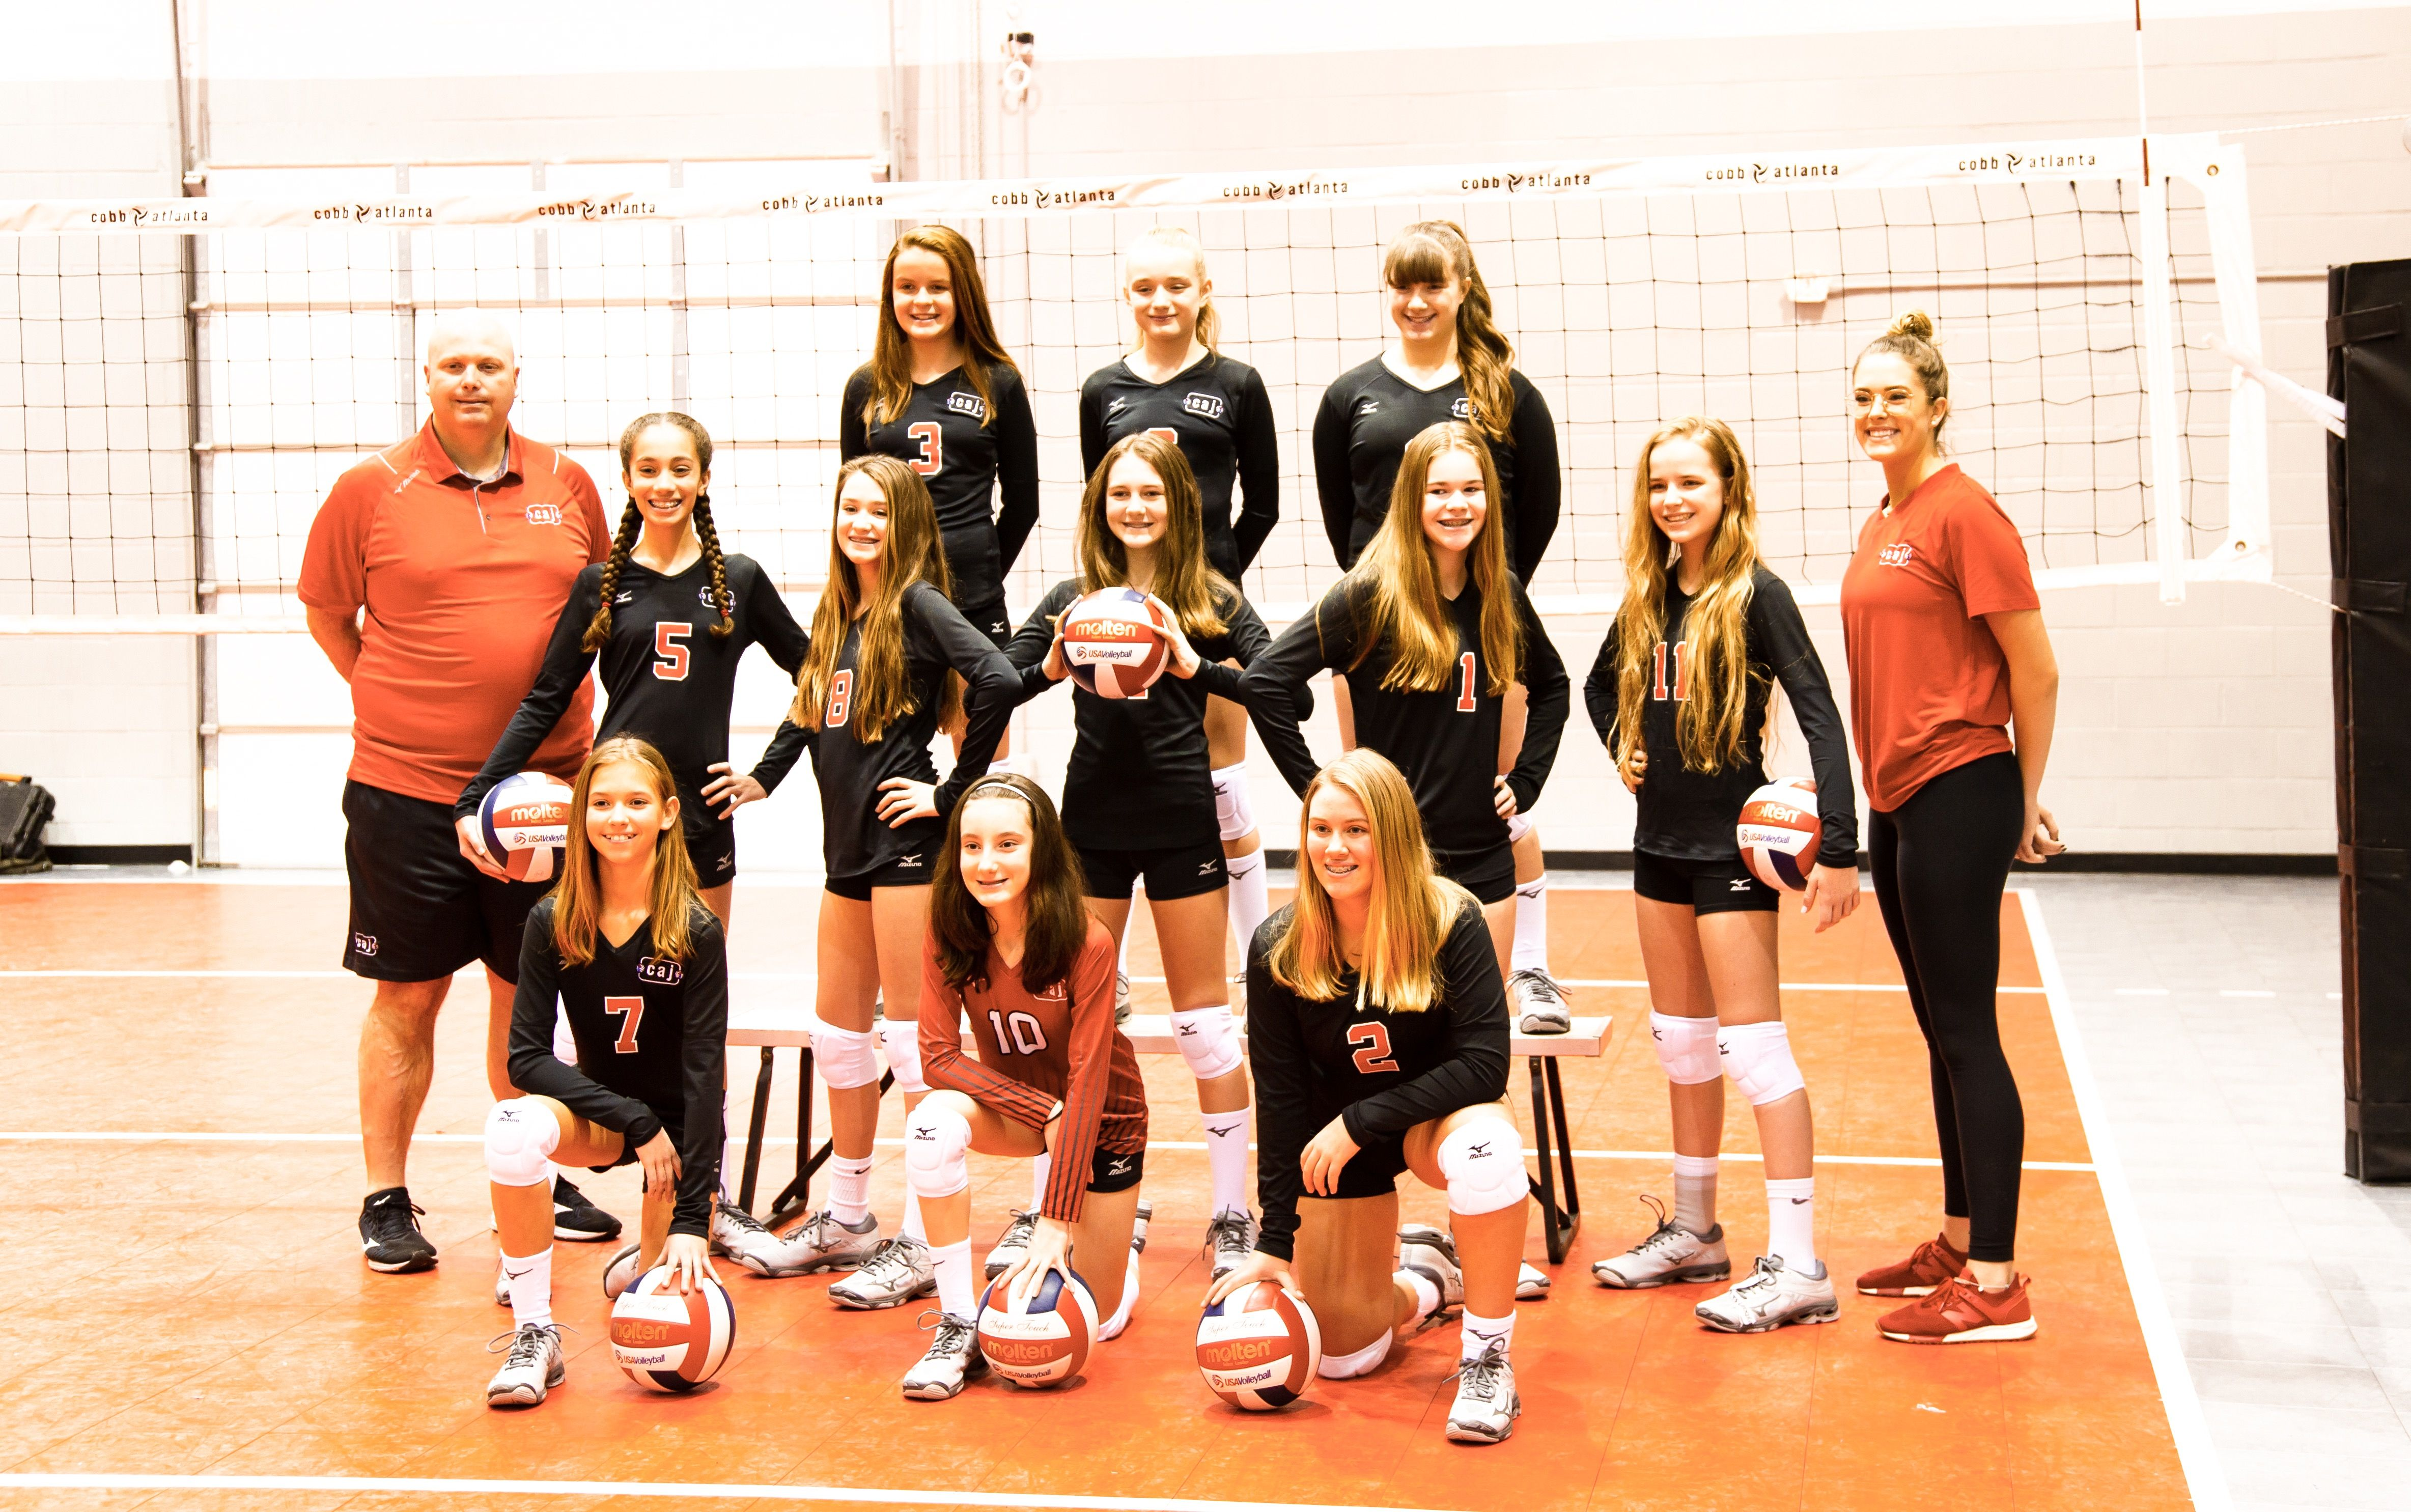 Pin By Siena Cary On Volleyball Volleyball Team Pictures Volleyball Inspiration Volleyball Pictures